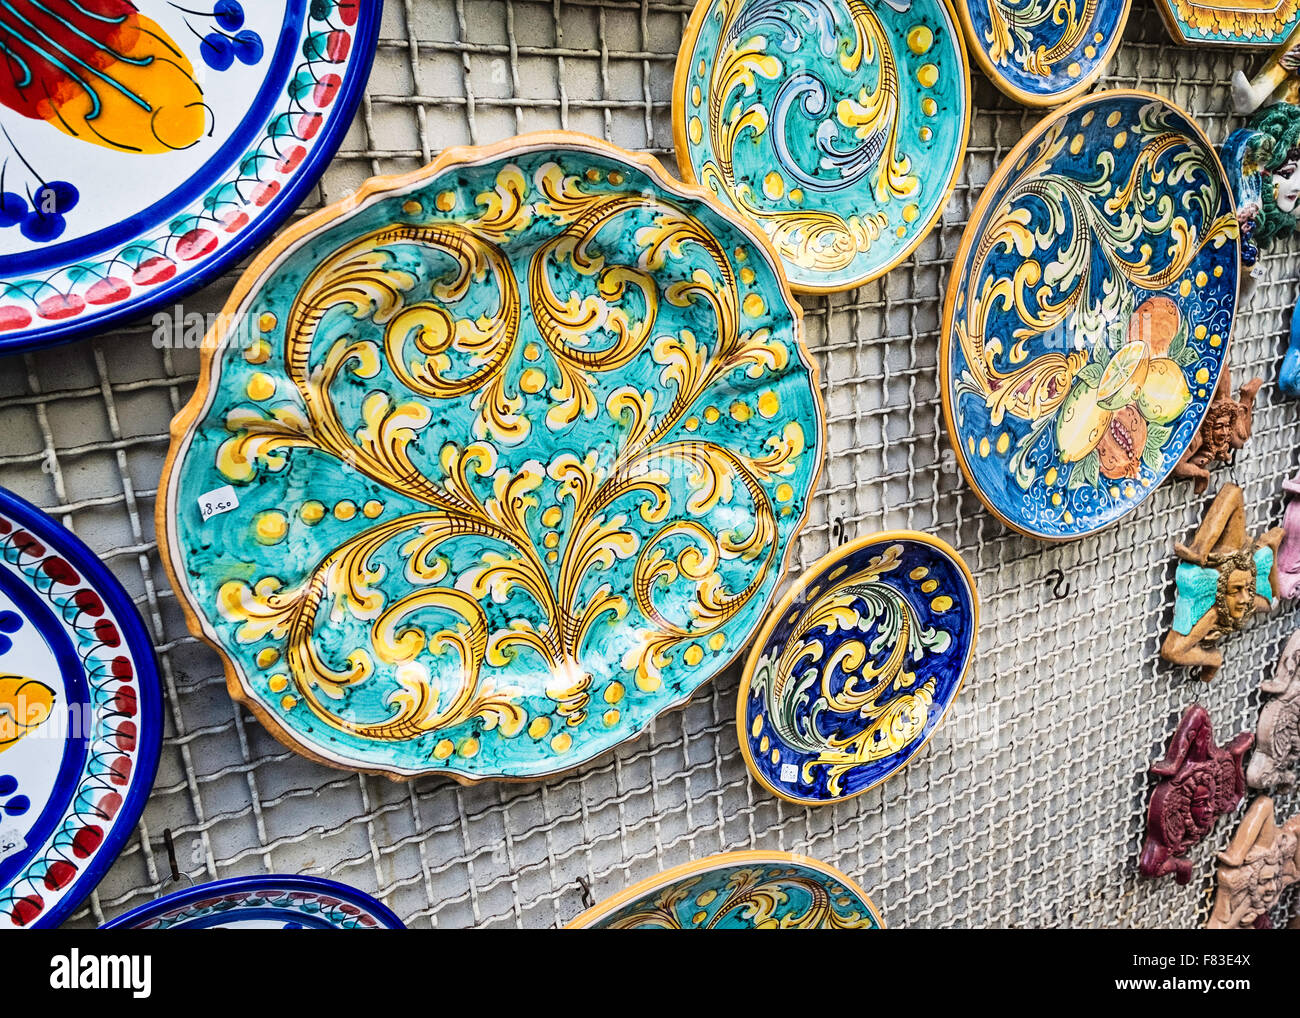 Sicilian plates on a market stall wall Taormina Sicily & Sicilian plates on a market stall wall Taormina Sicily Stock Photo ...